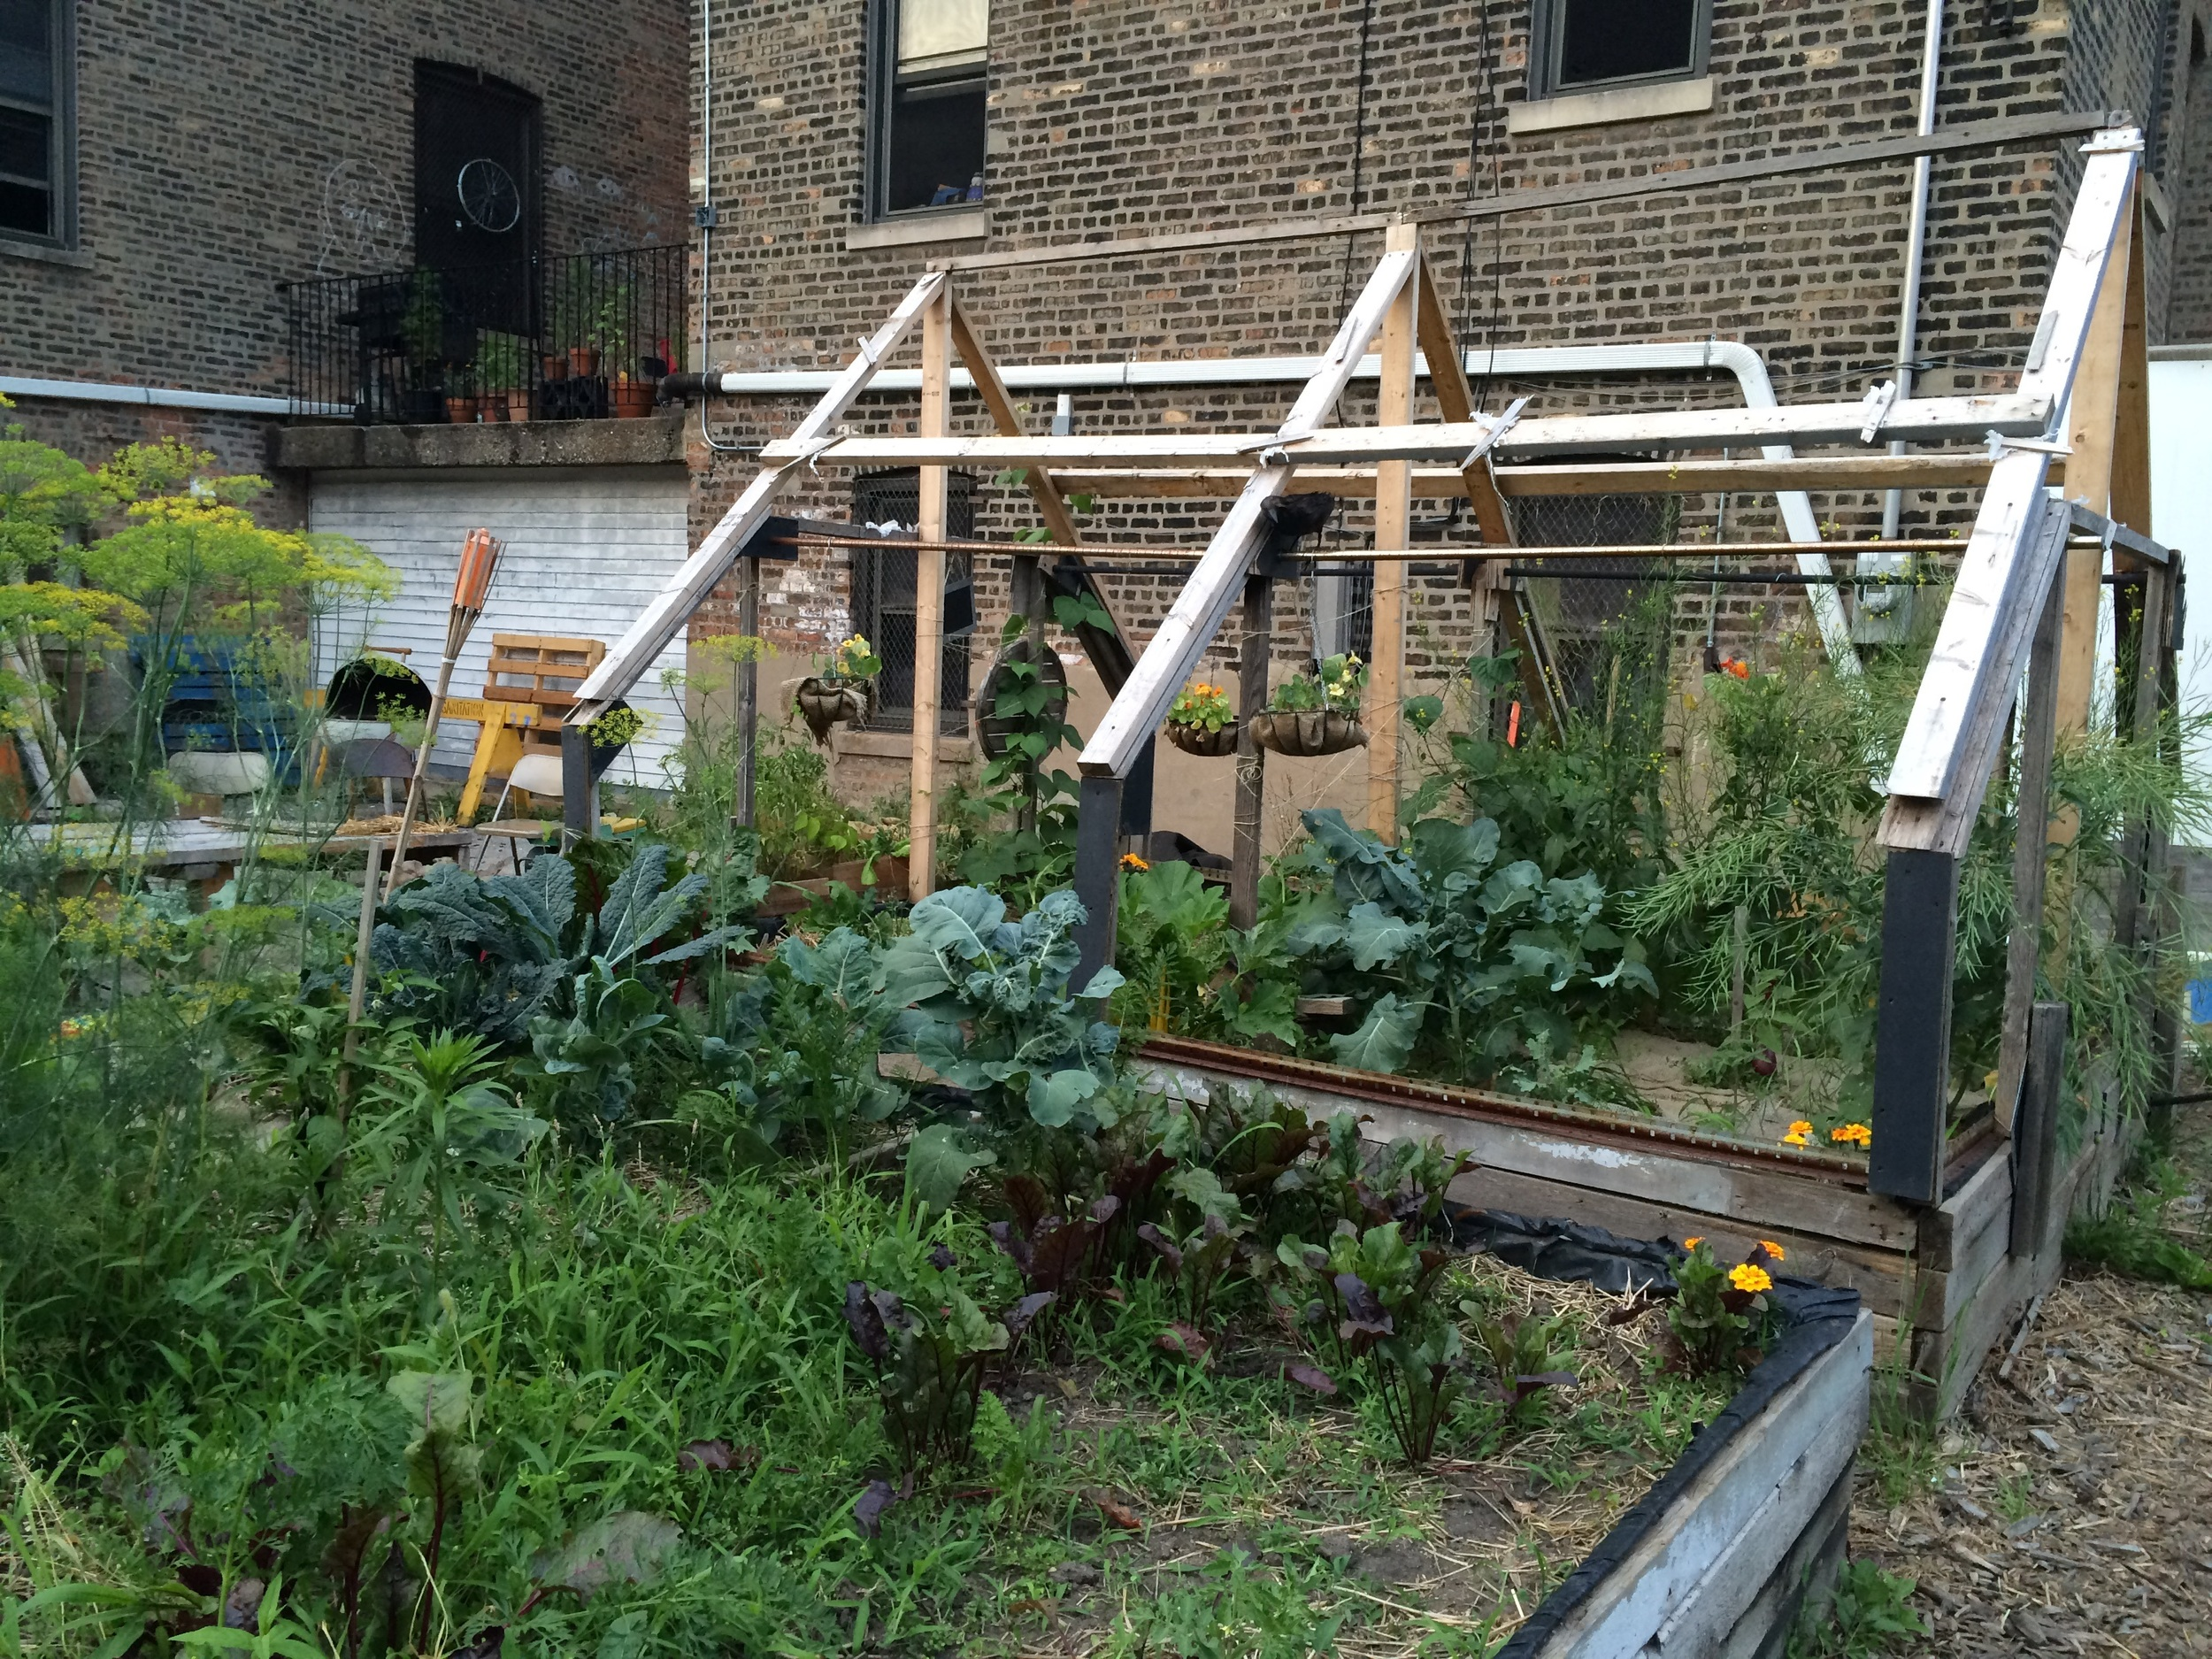 Organic, raised bed gardens bring Bridgeport community members together to raise healthy food for their pantry.